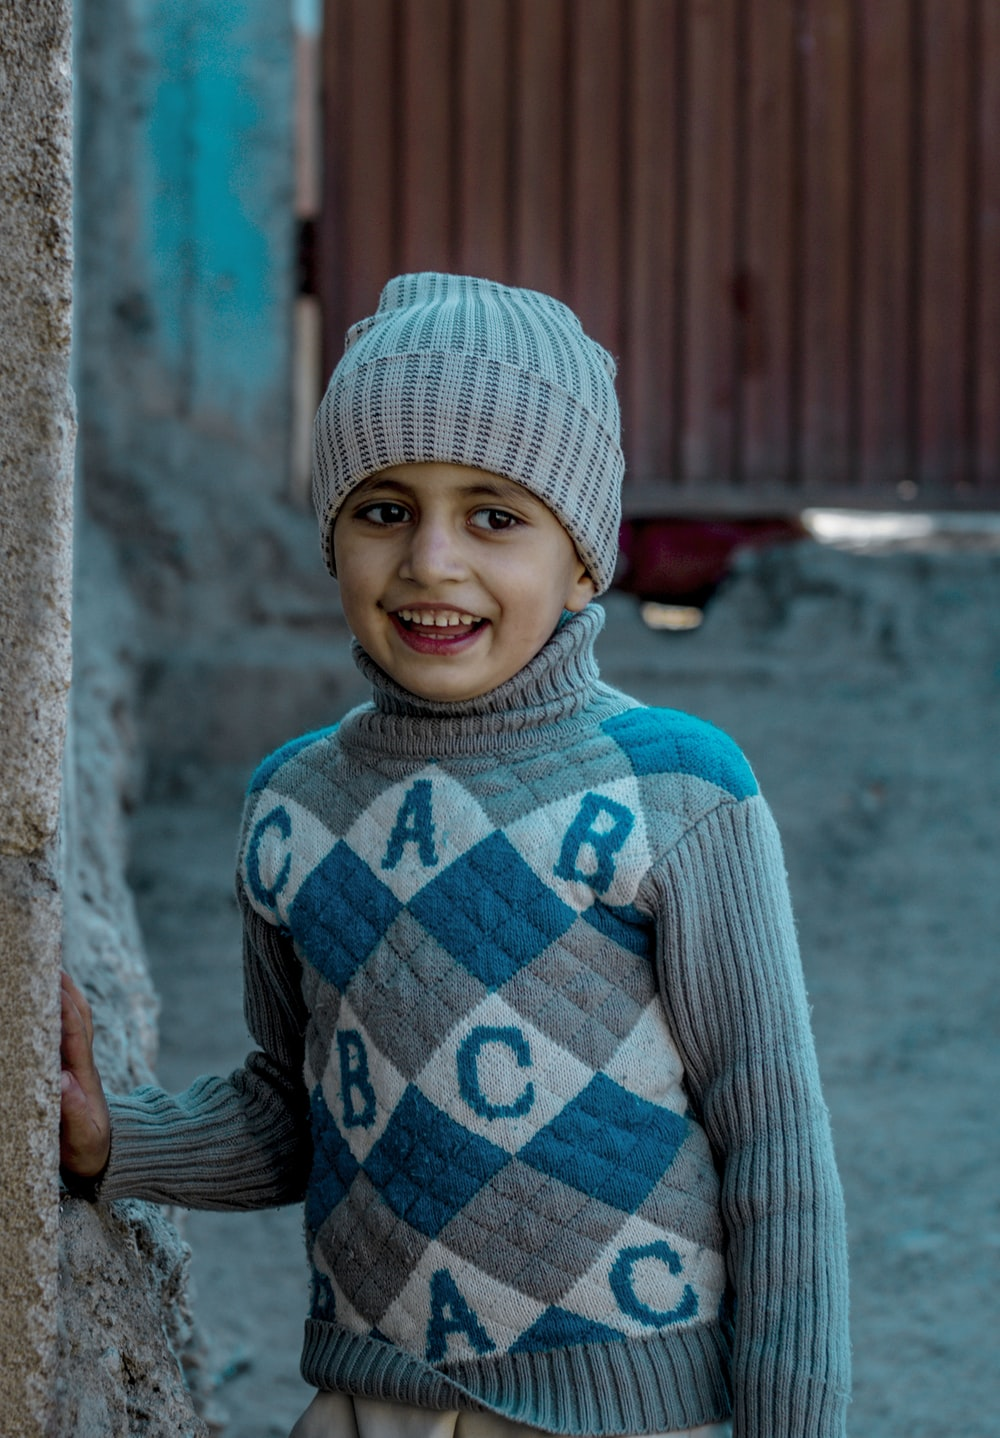 girl in blue and white striped sweater and pink knit cap